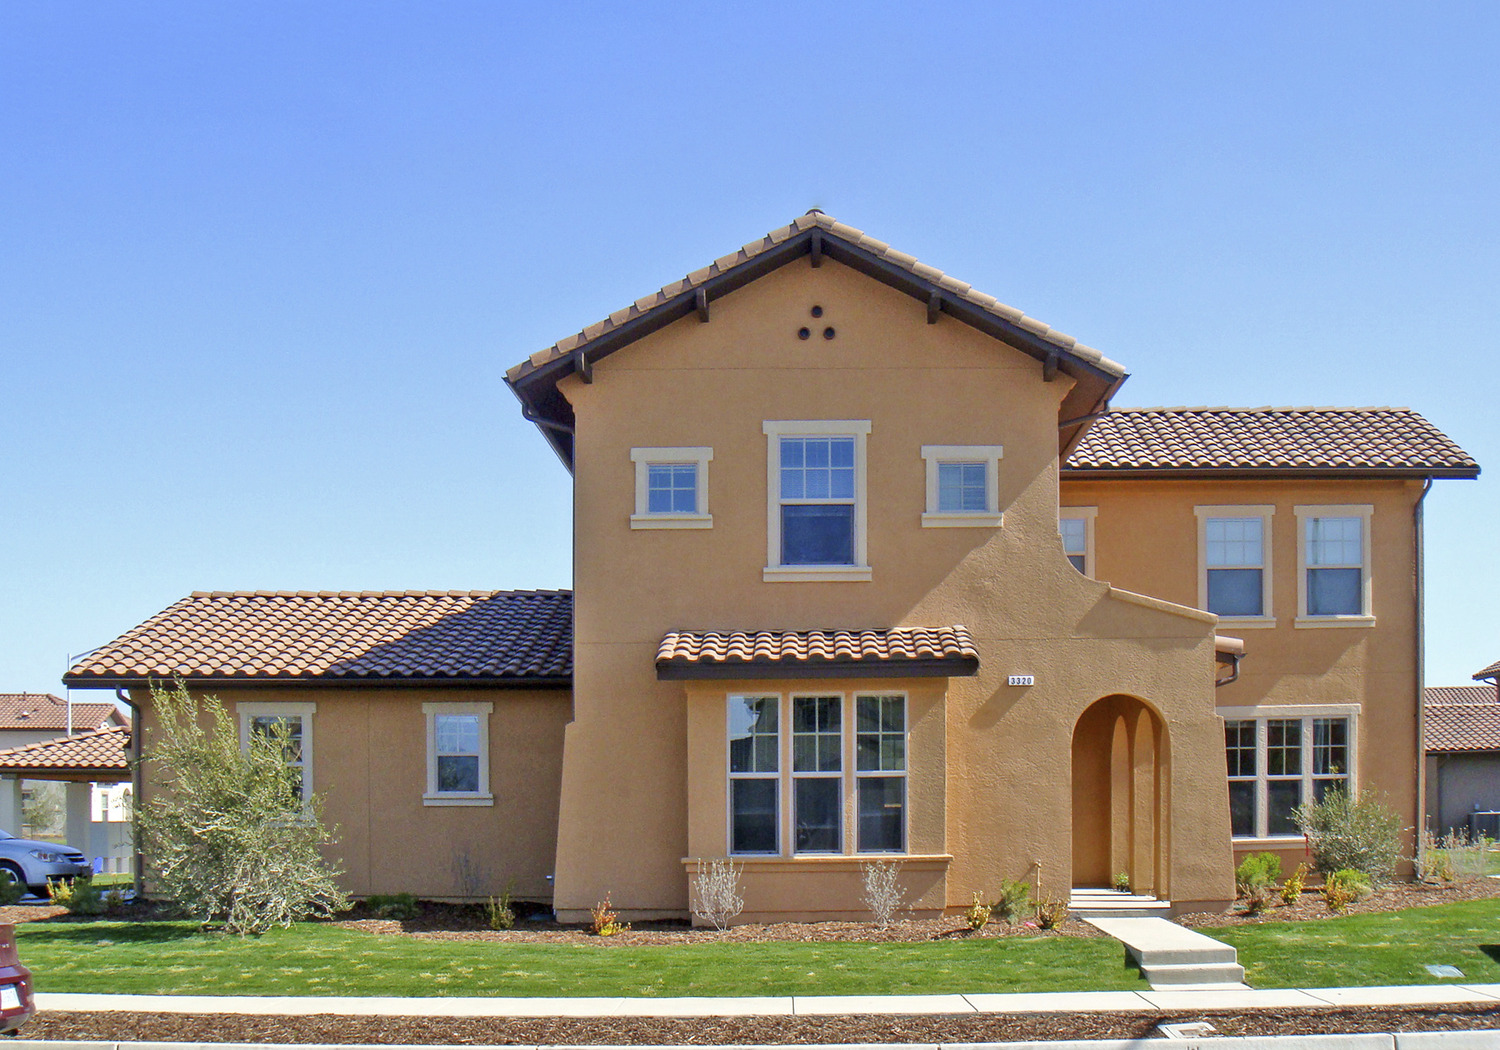 CBG builds San Diego Family Housing, a 12,698 Homes Across 24 Sites in California and Nevada in NV, CA - Image #3